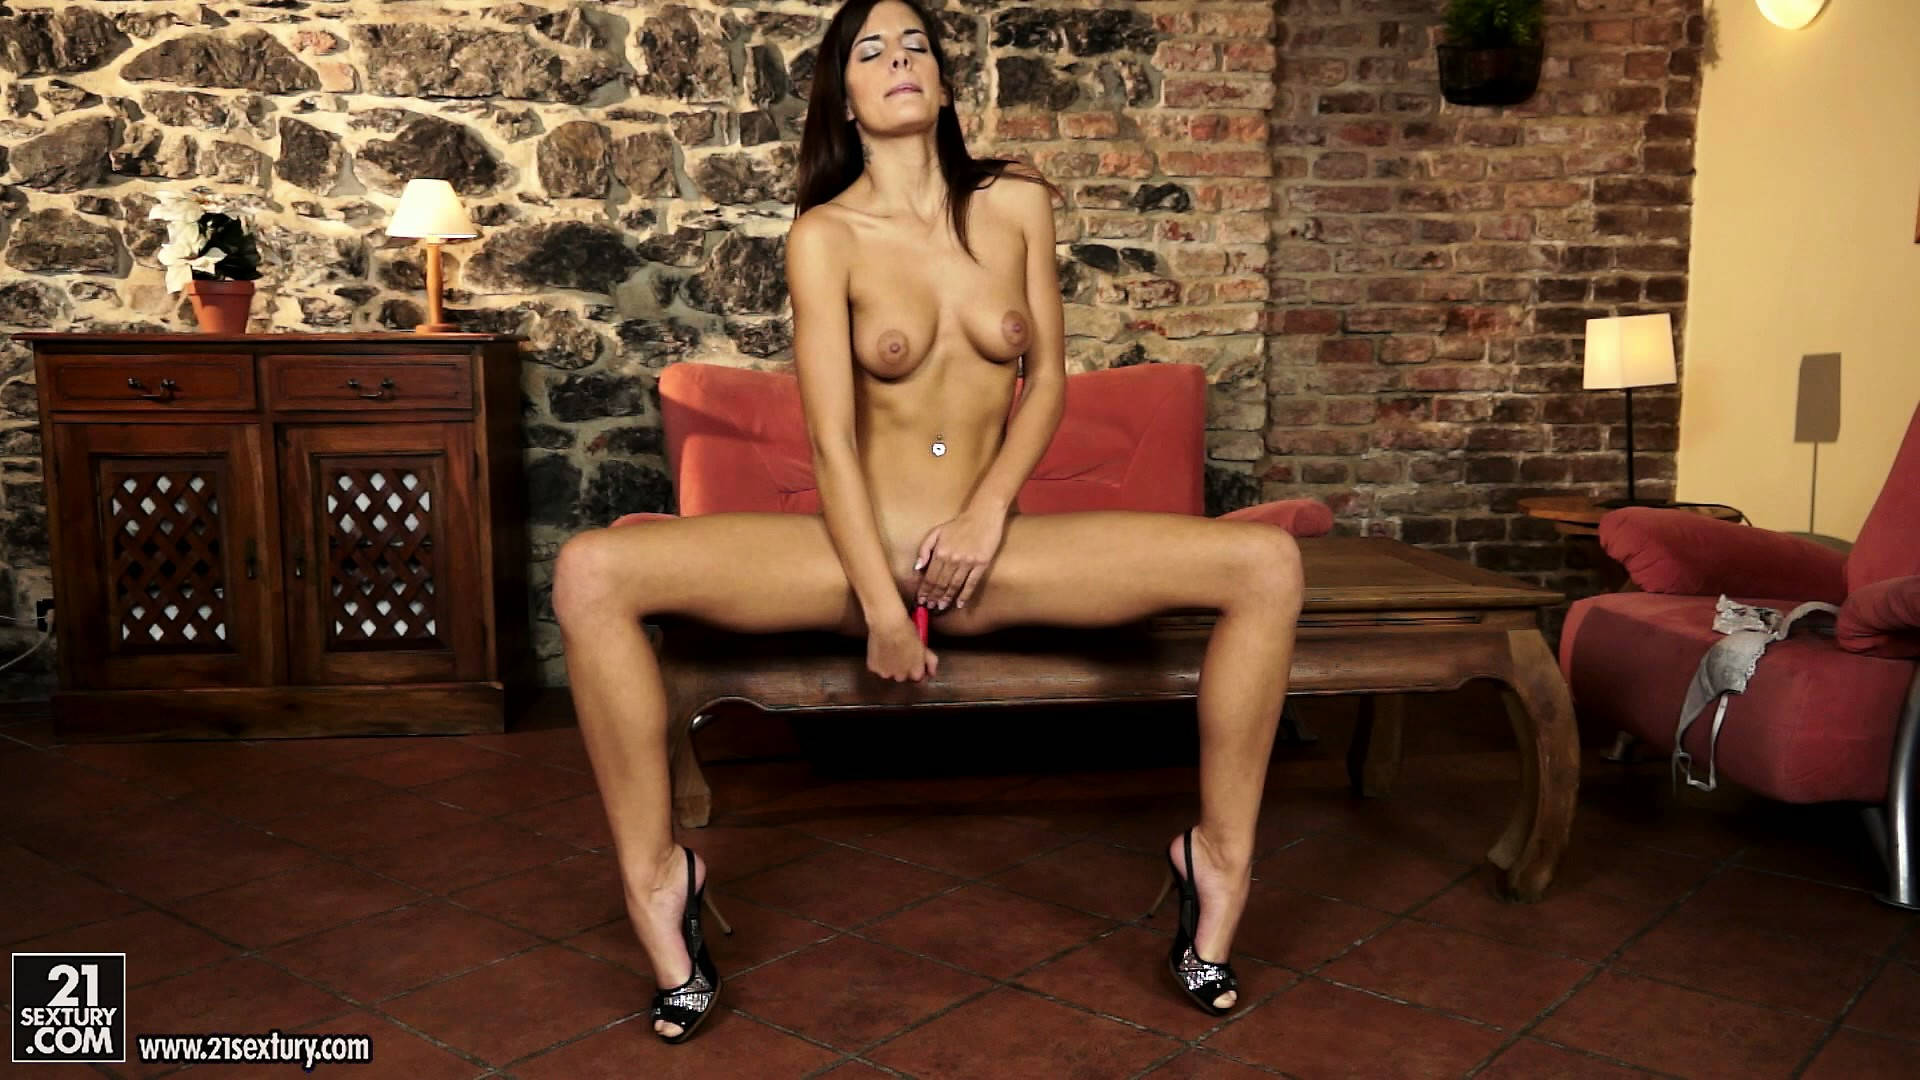 Porno Video of This Hot Brunette Babe Gives A Perfect 10 Solo Performance With Her Dildo